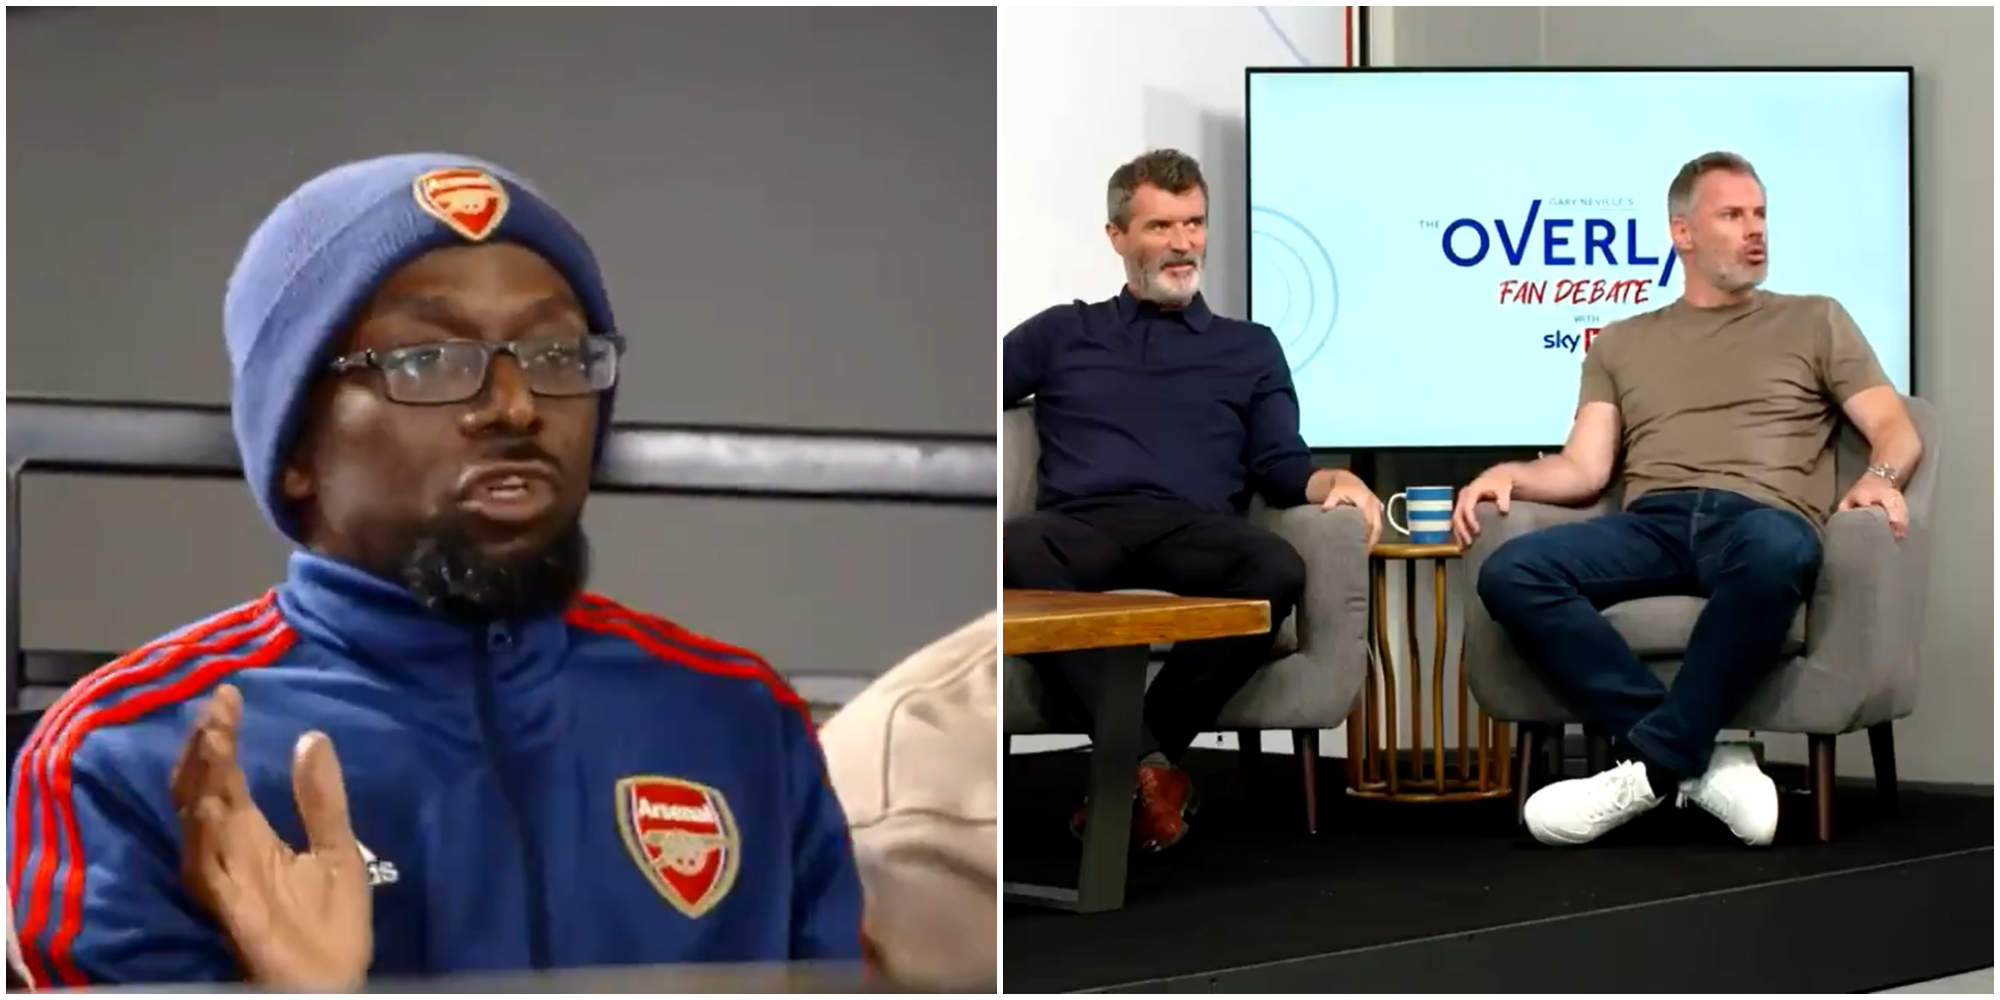 (Video) Carragher makes AFTV's Ty look utterly silly after bizarre Premier League rant